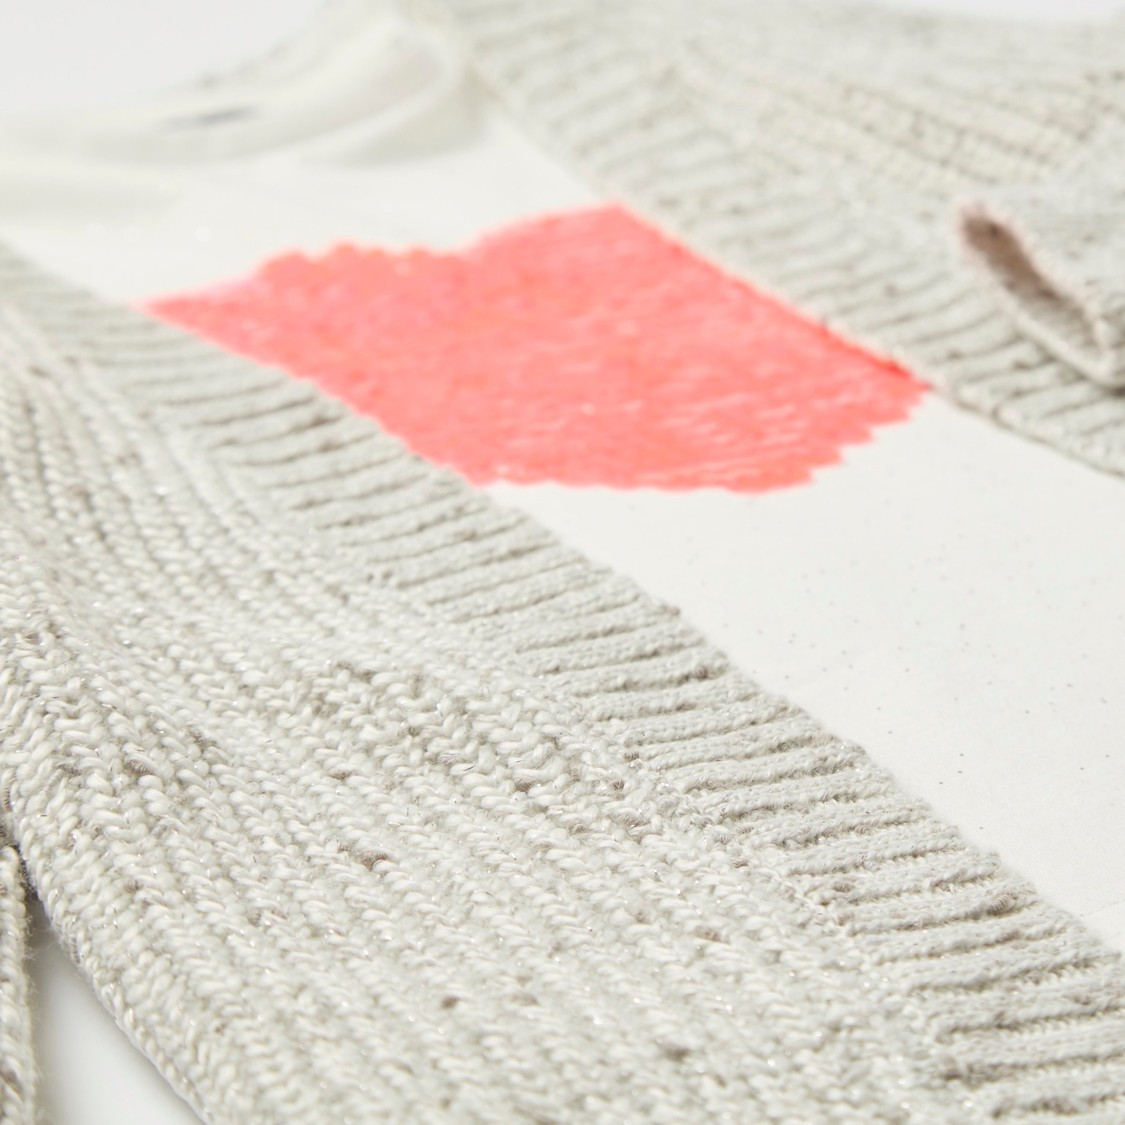 Sequin Detail Long Sleeves T-shirt with Textured Cardigan